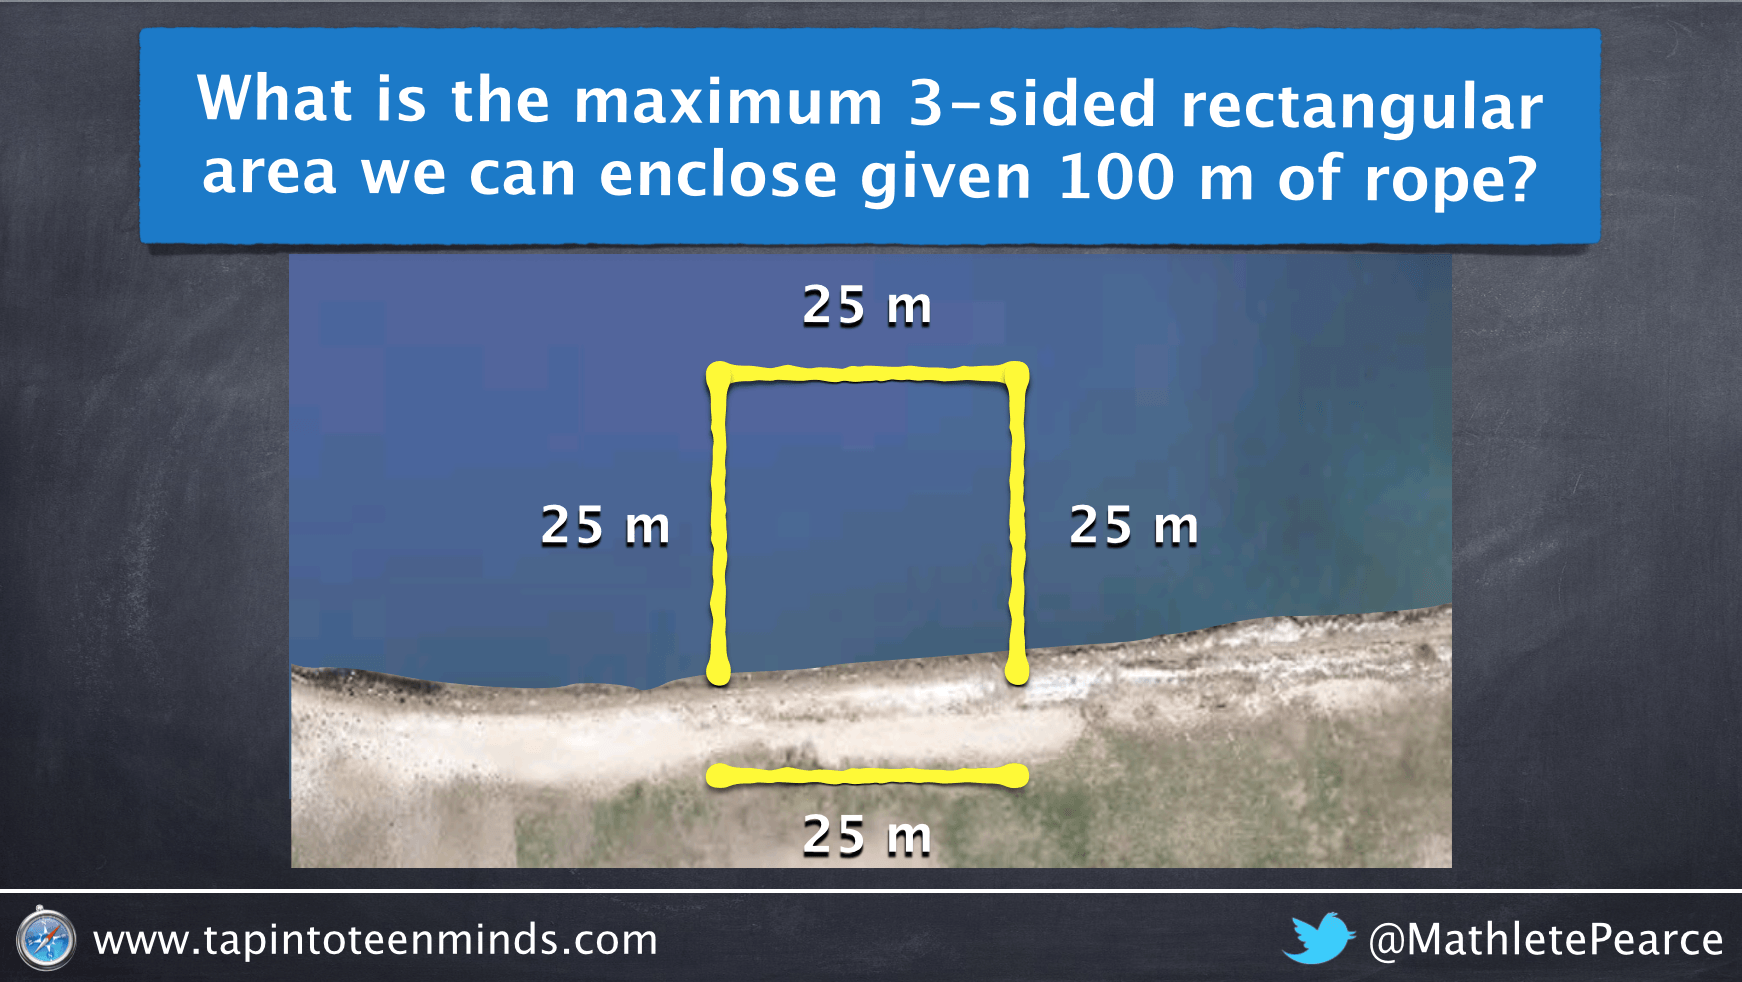 Visualizing the Maximum Area of a 3-Sided Rectangular Enclosure